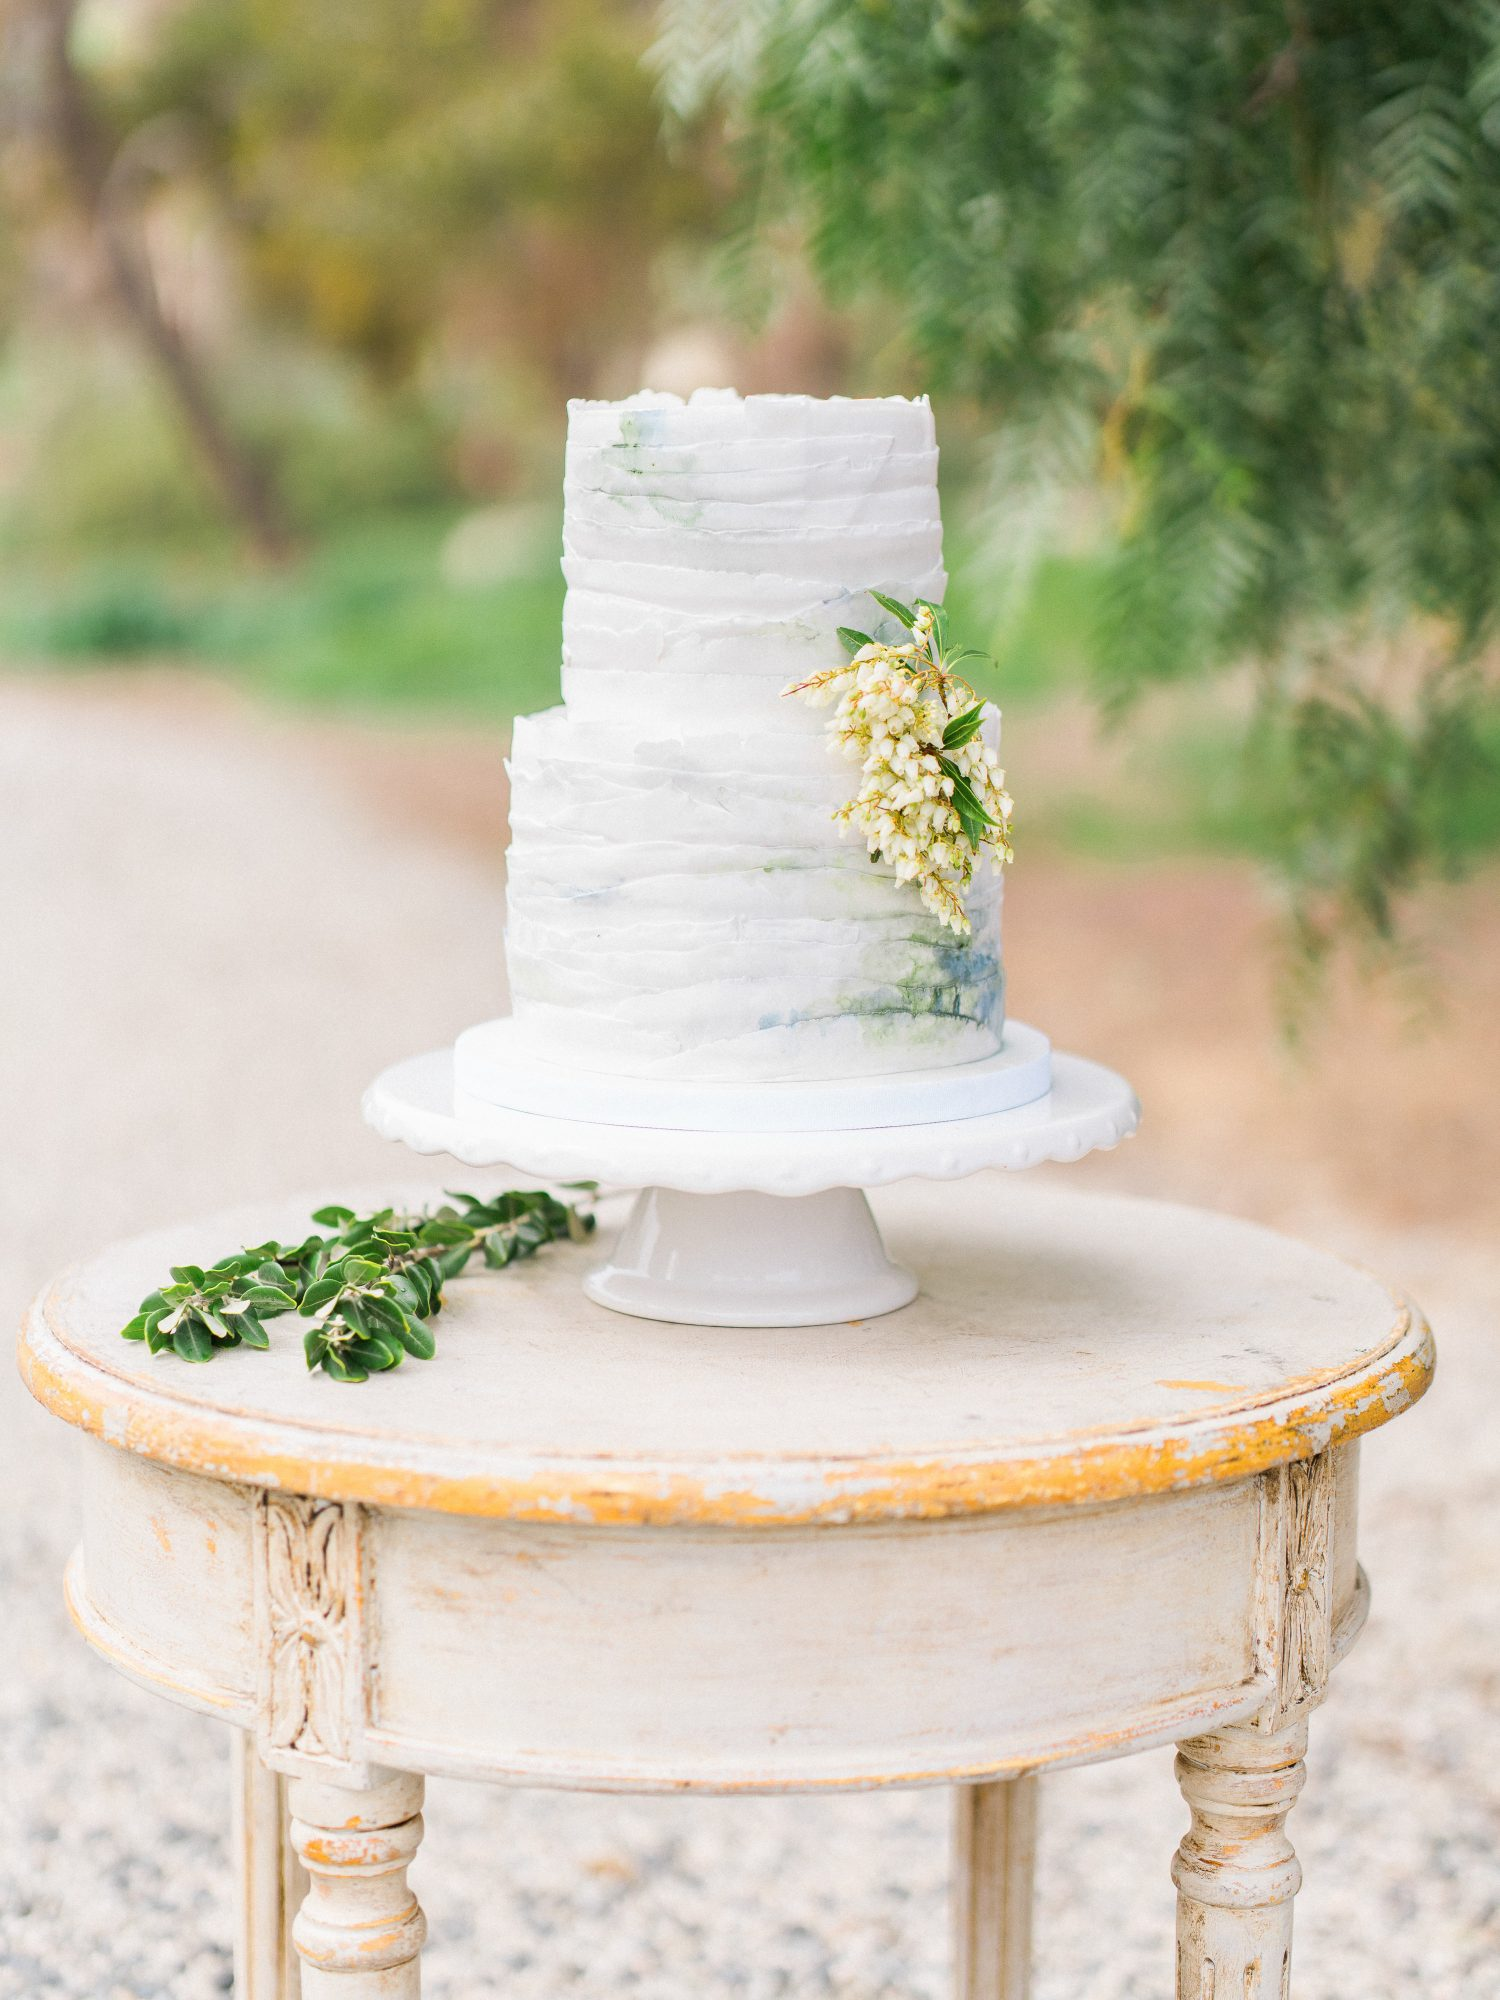 Gray and White Deckle-Edge Wedding Cake